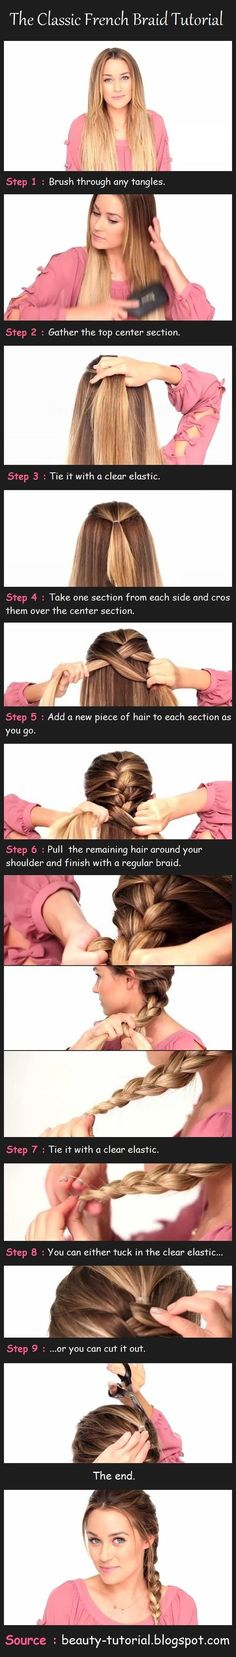 Pretty sure I've already pinned this- but it's still a good tutorial!